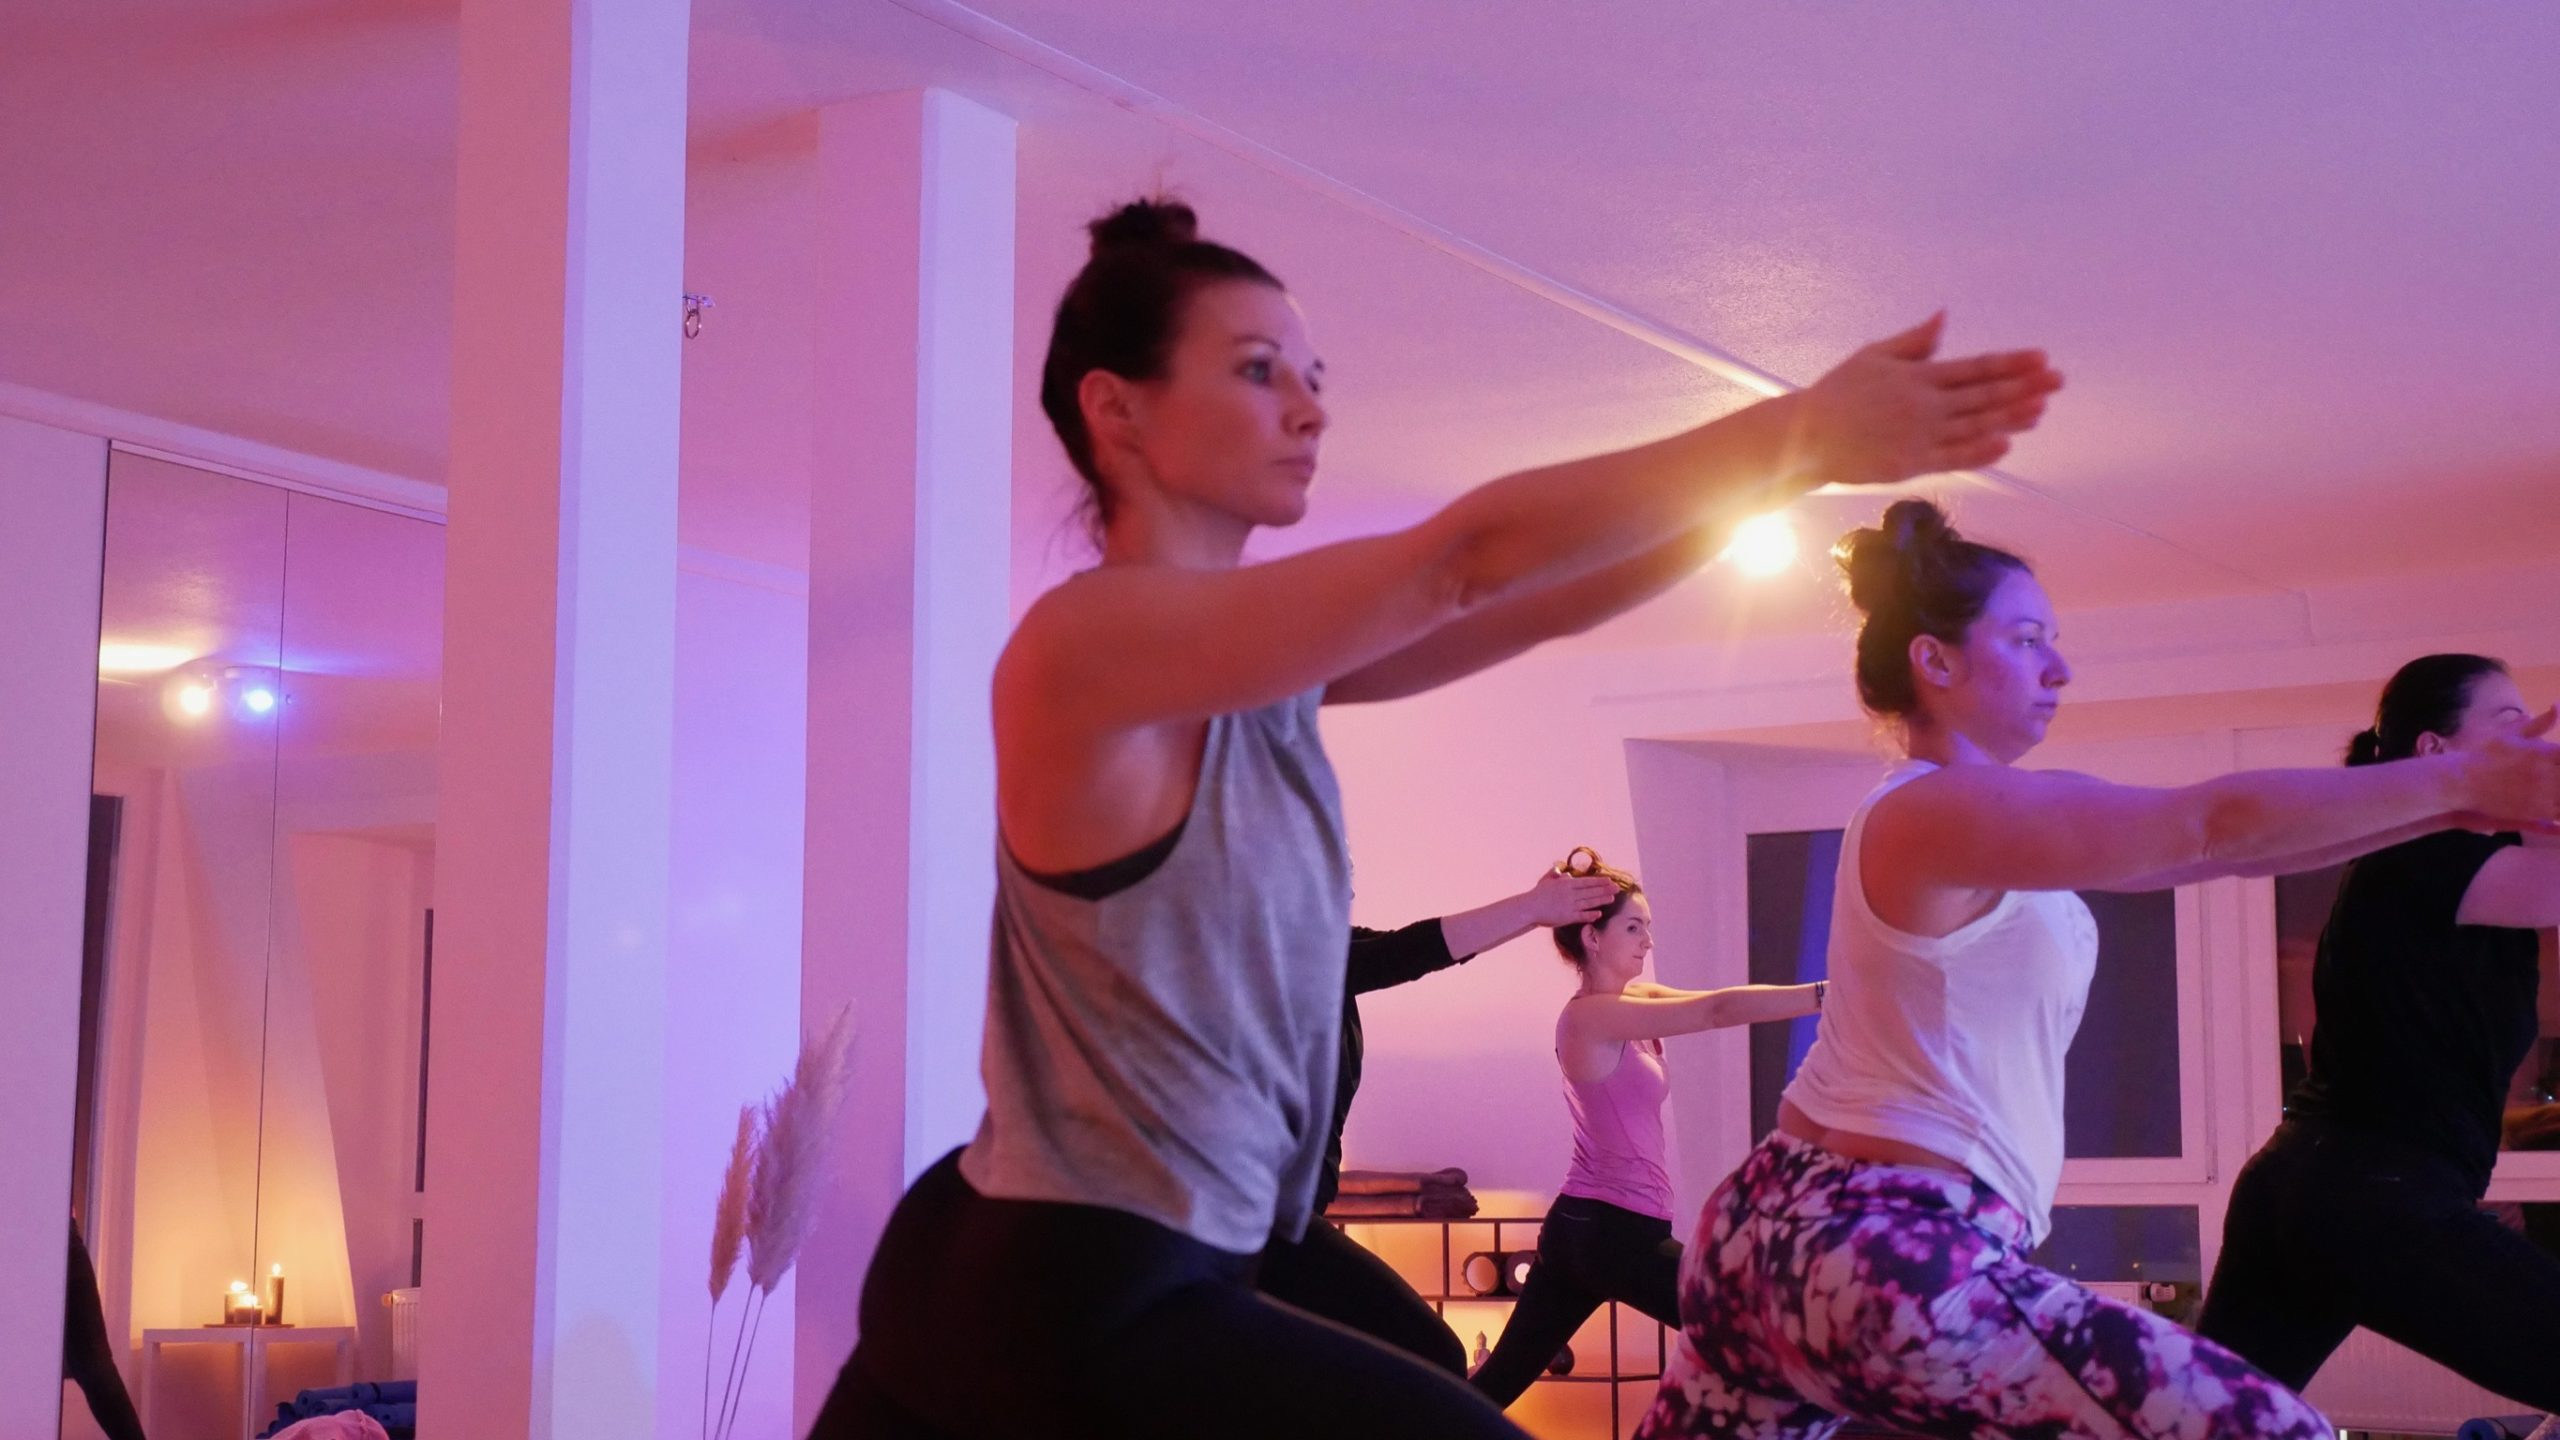 Vinyasa Yoga Erding endurer Studio